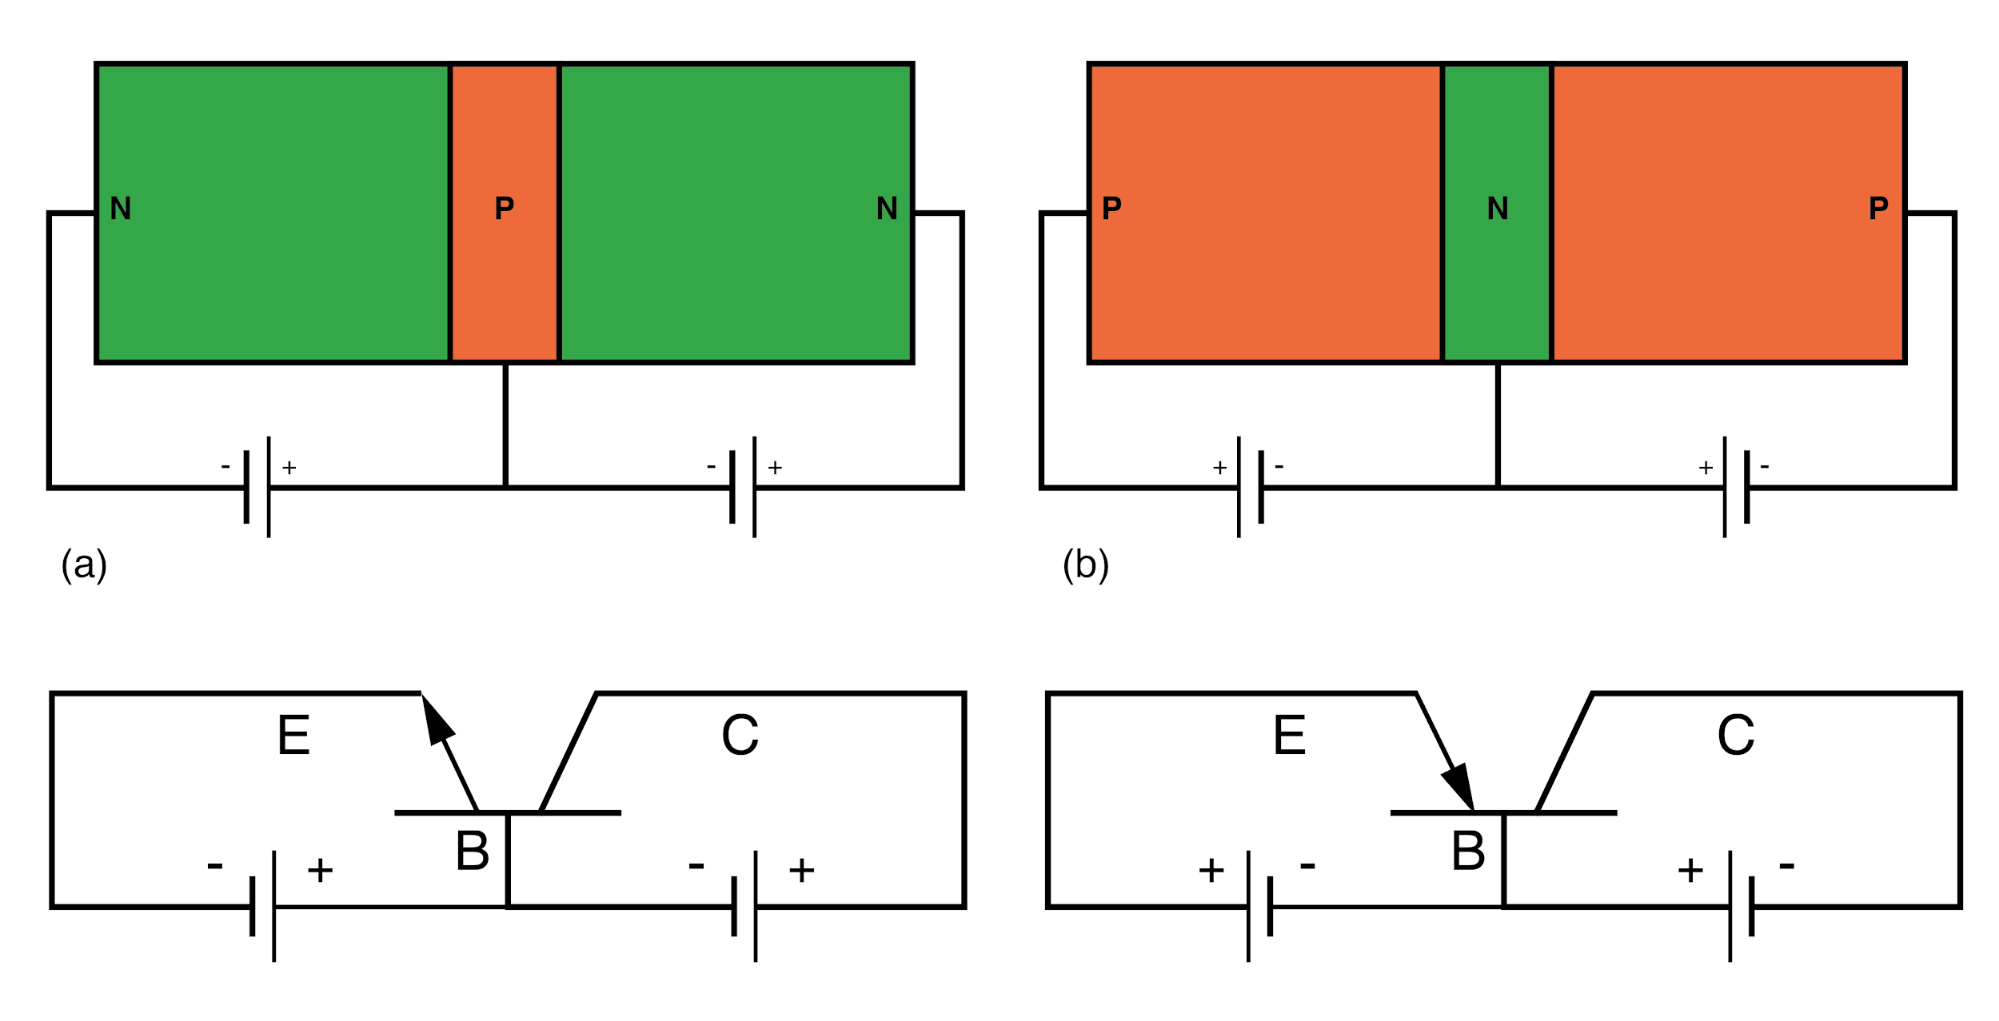 Compare NPN transistor at (a) with the PNP transistor at (b). Note direction of emitter arrow and supply polarity.